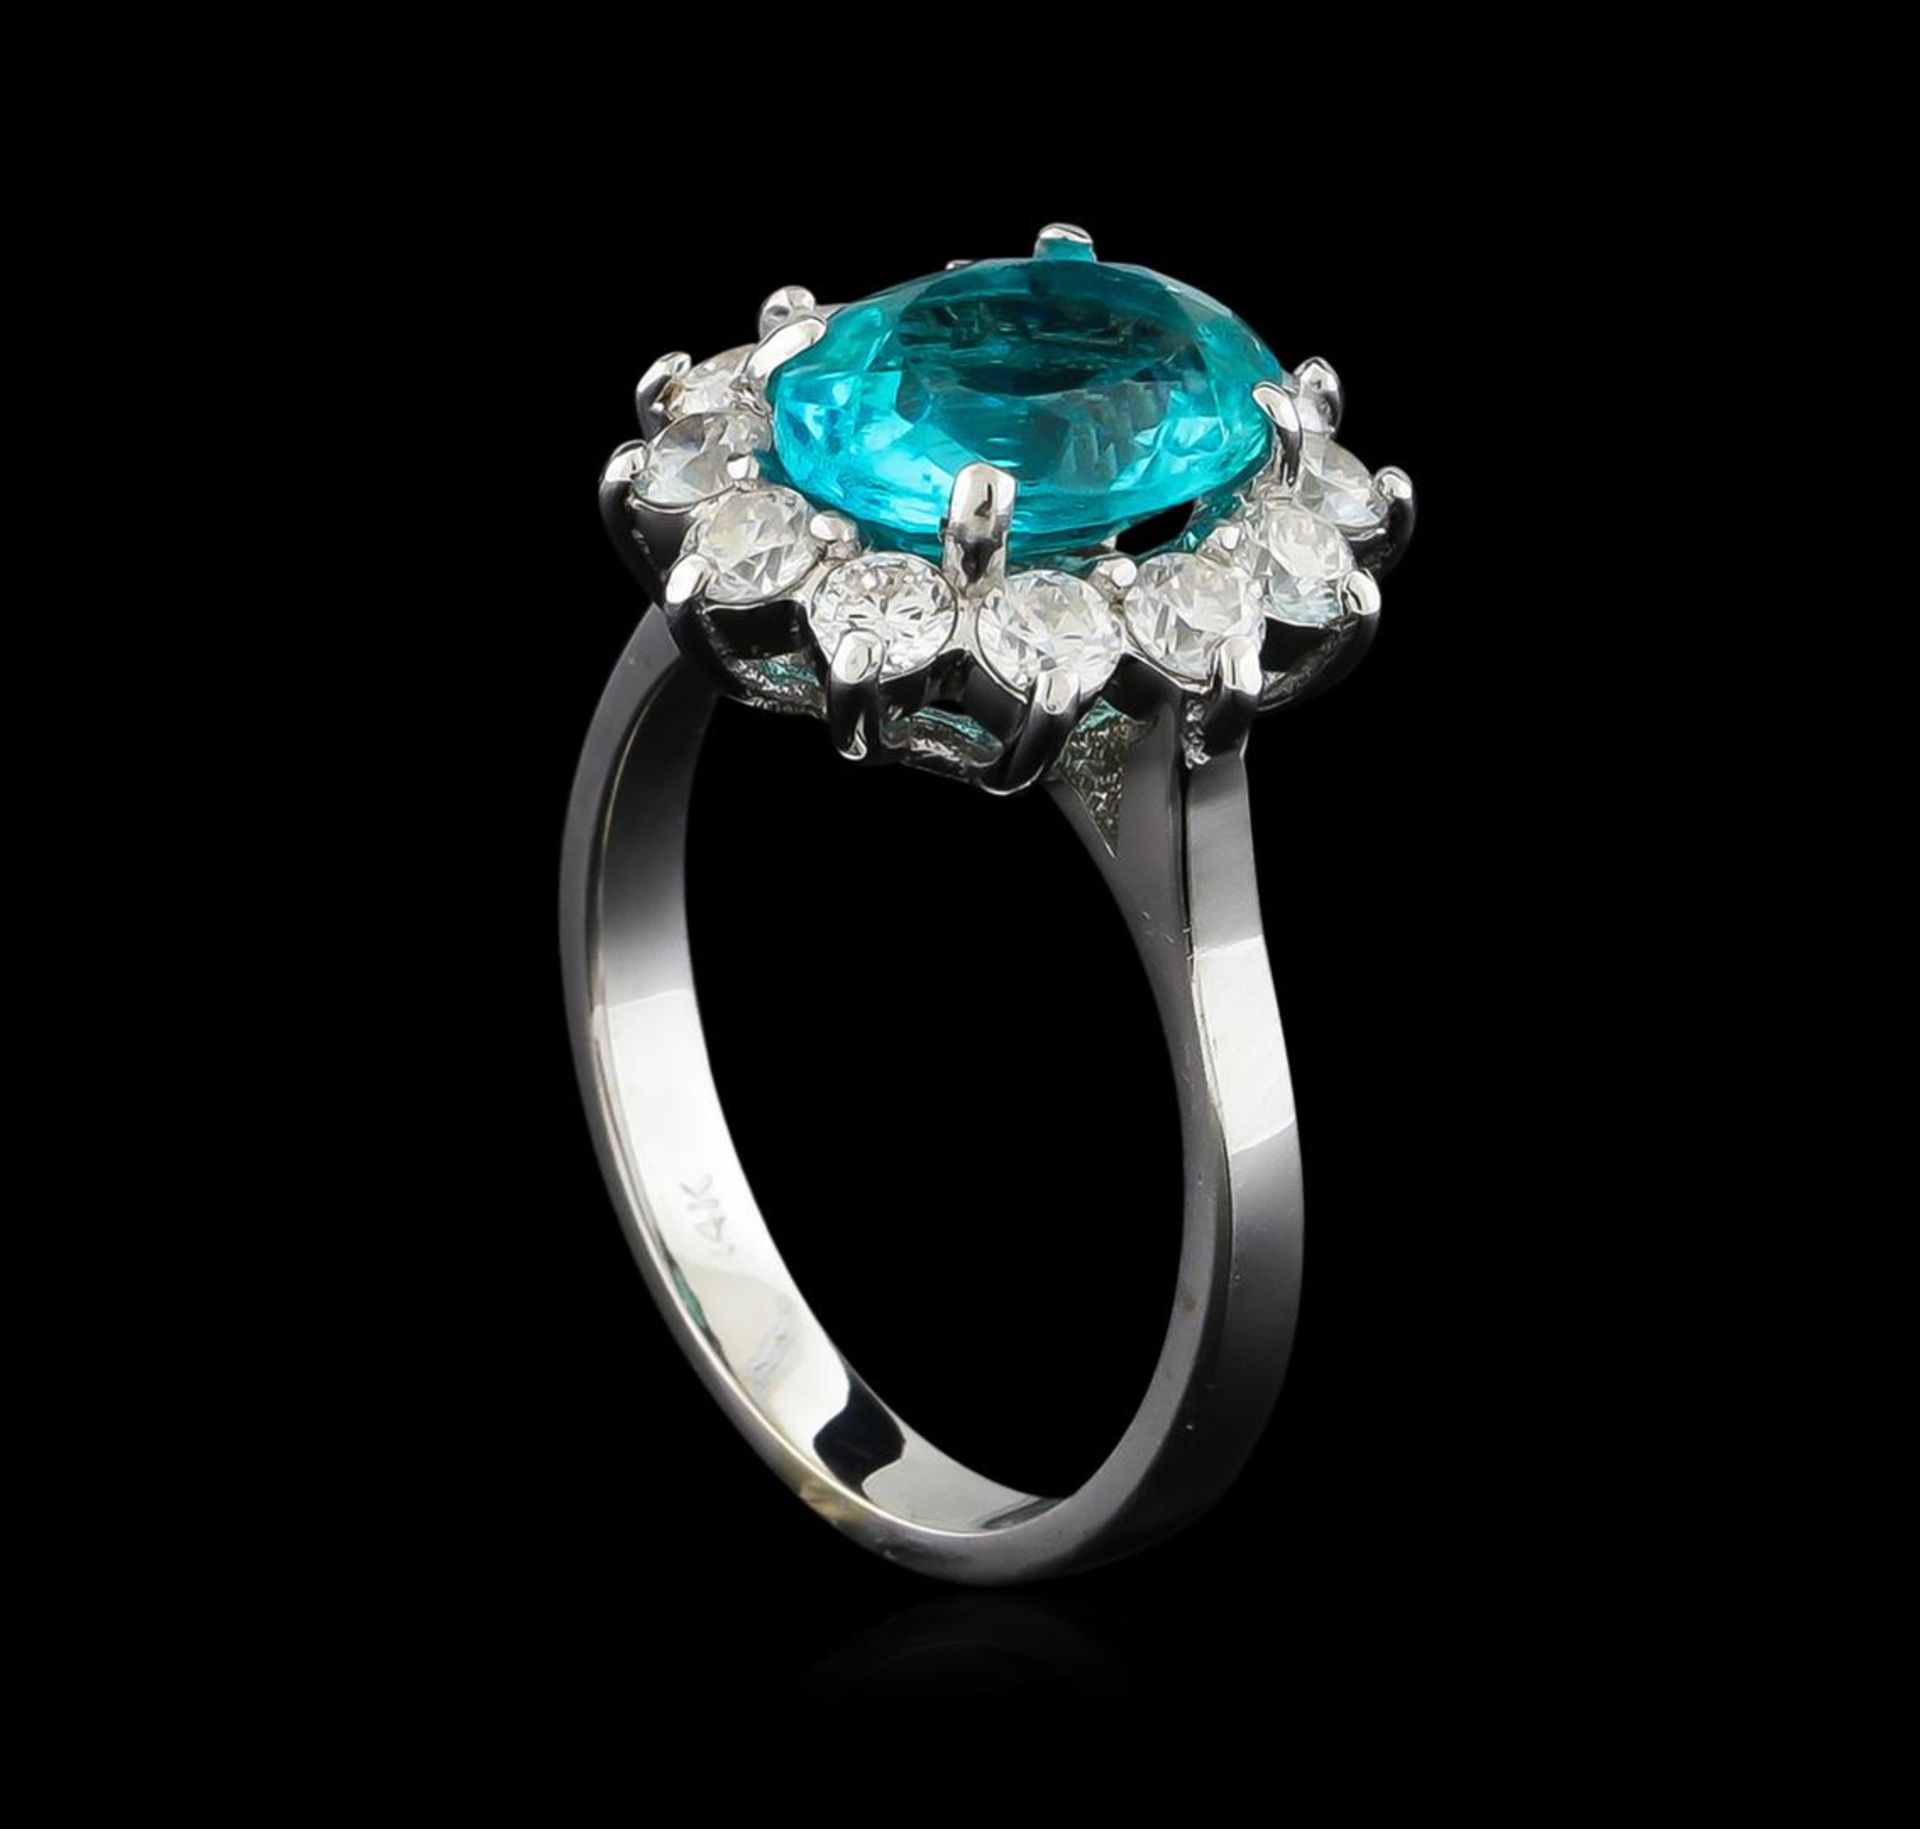 2.78 ctw Apatite and Diamond Ring - 14KT White Gold - Image 3 of 4